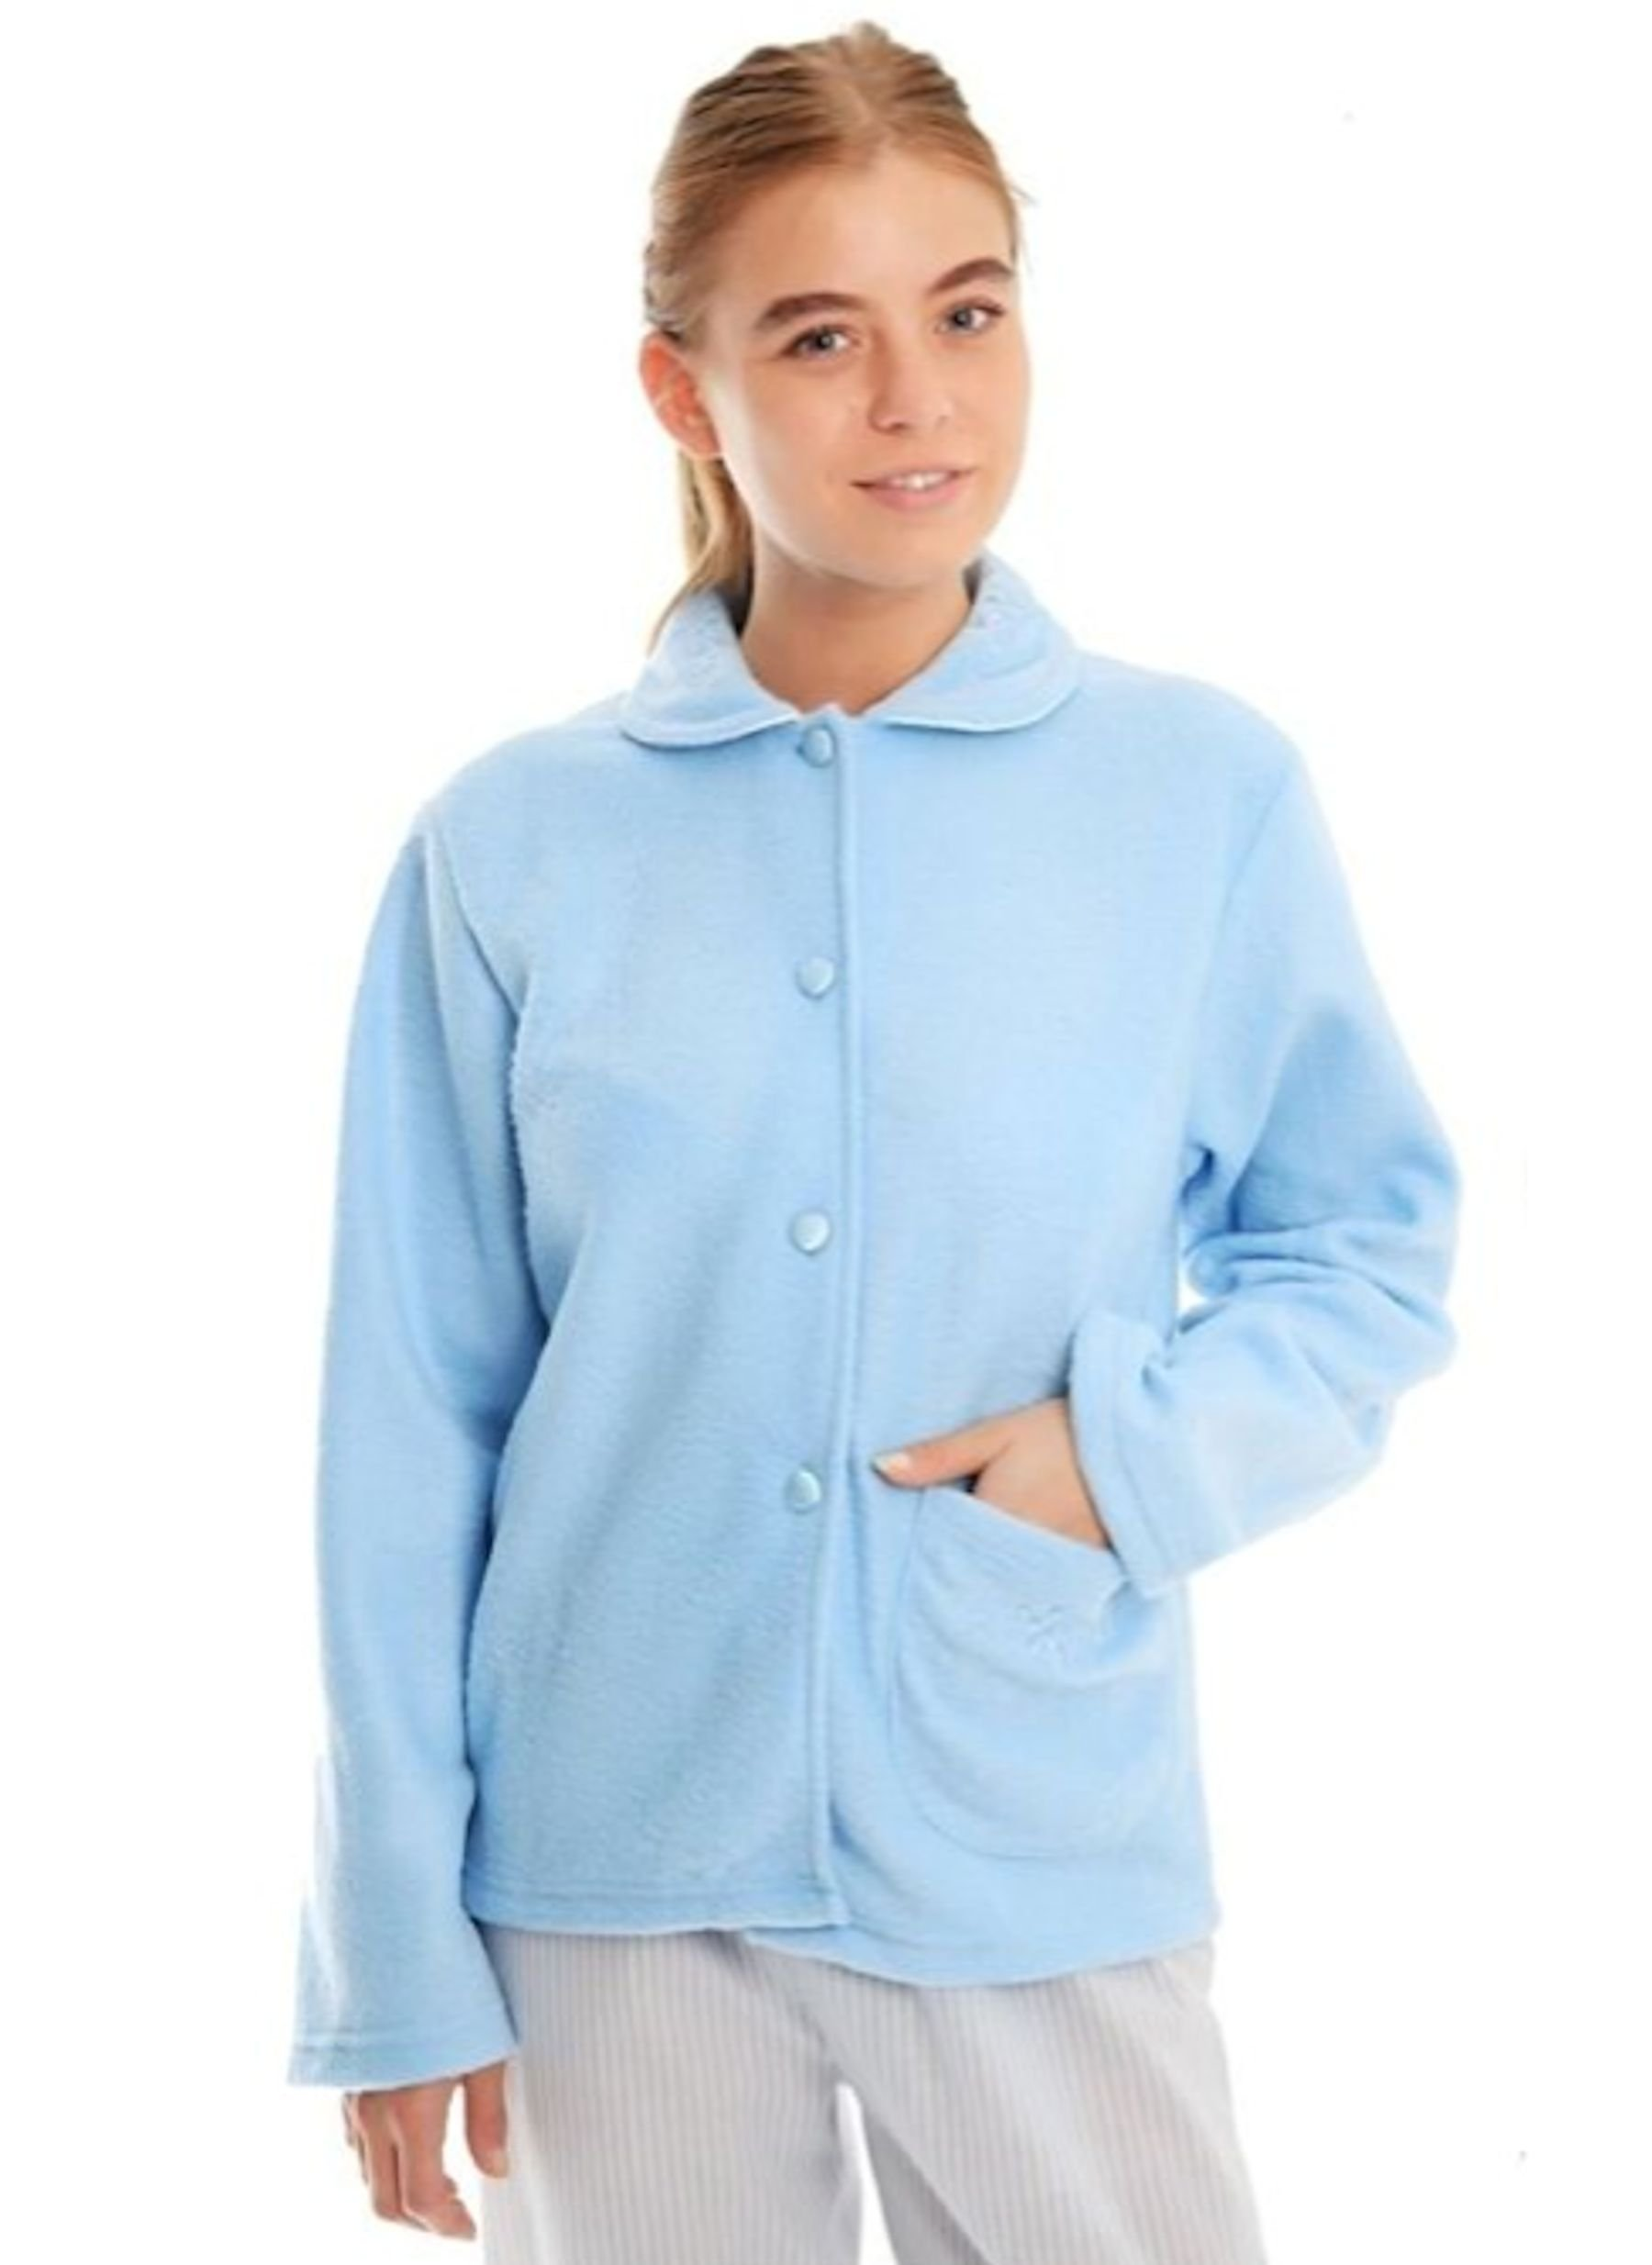 714aoxvqJ L - Ladies Fleece Bed Jacket with Floral Pattern on Collar and Single Front Pocket Pink, Blue, Aqua Sizes 10-12, 14-16, 18…